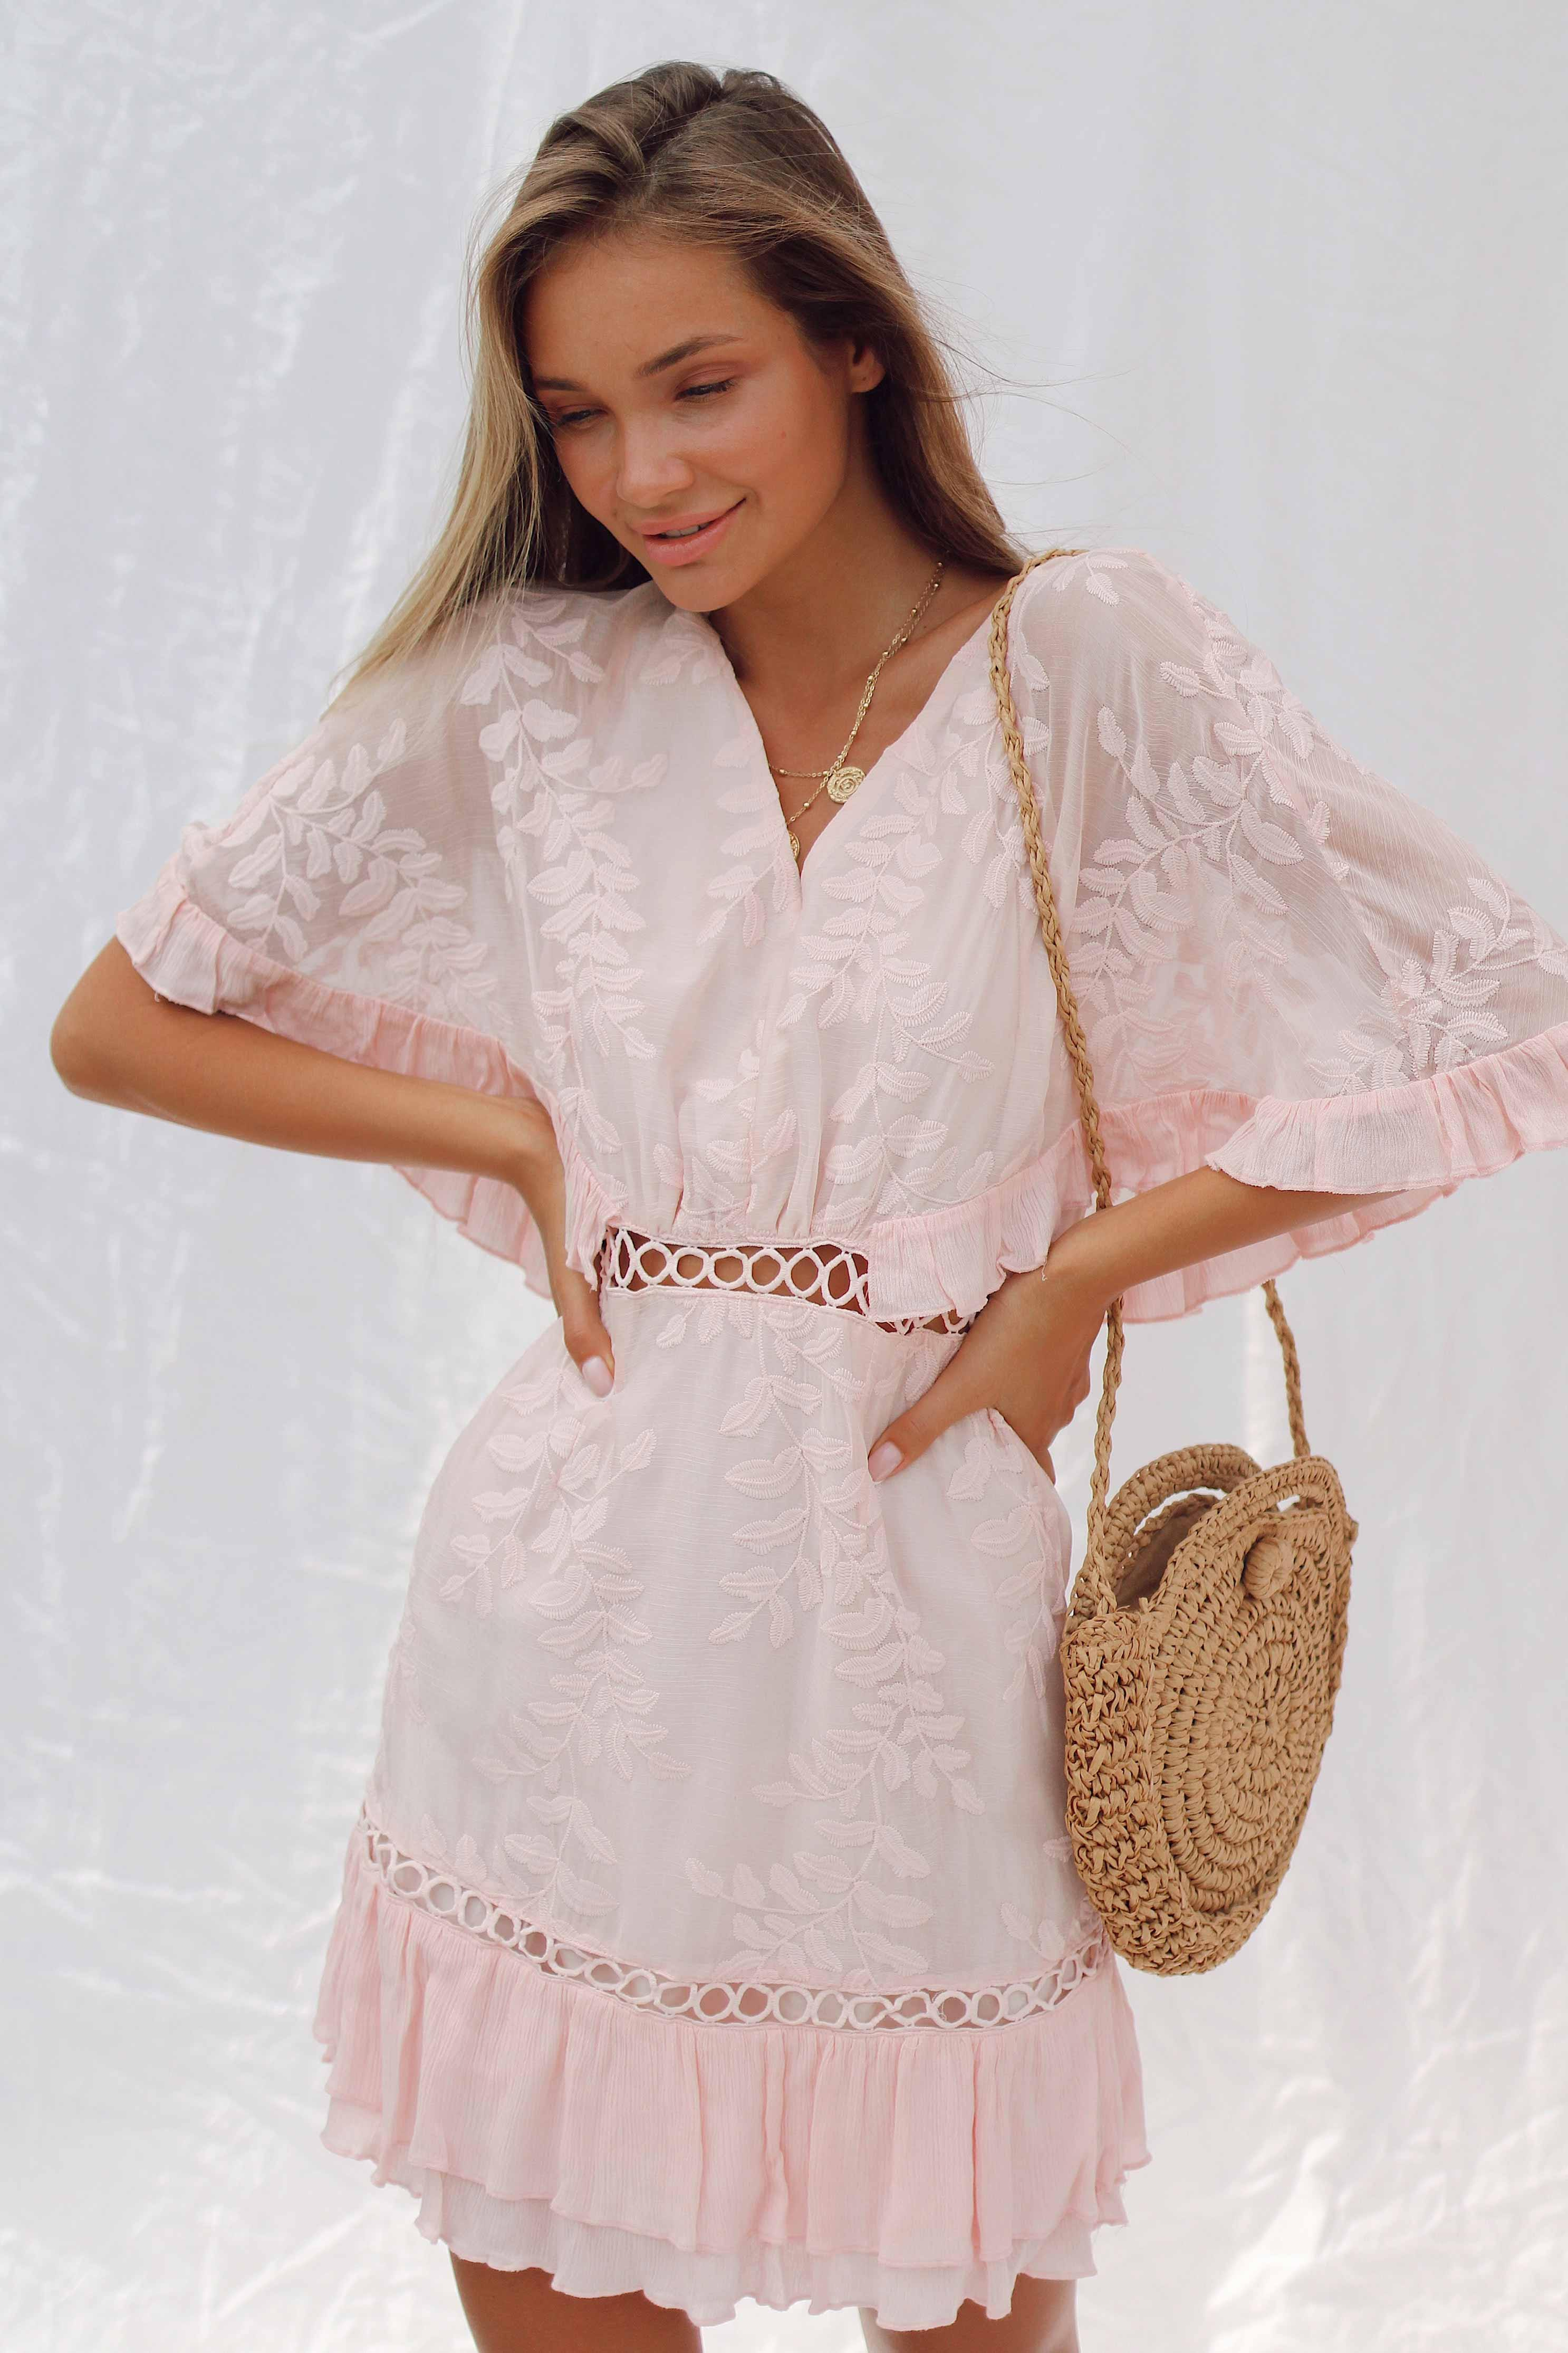 AMALIA DRESS IN LIGHT PINK - Chic Le Frique